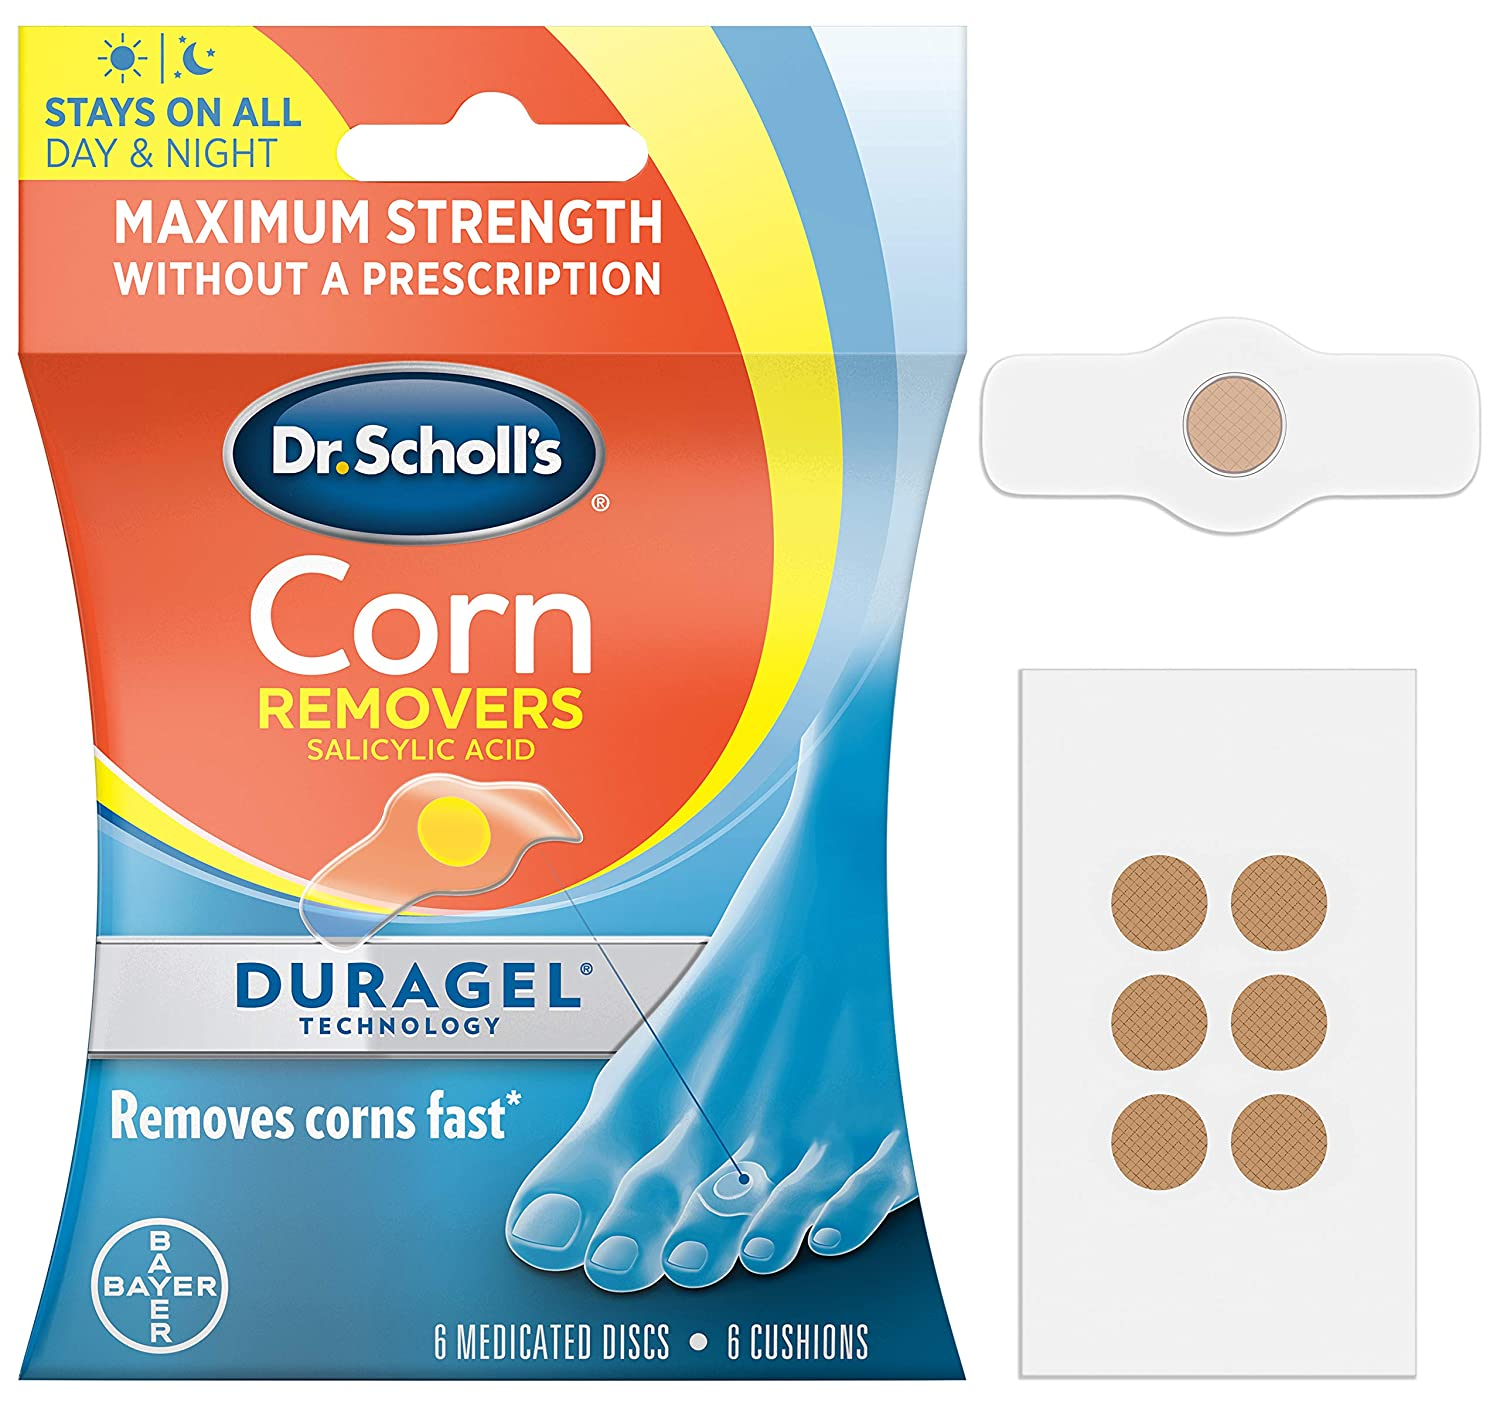 Dr. Scholl's CORN REMOVER with Duragel Technology, 6ct // Removes Corns Fast and Provides Cushioning Protection against Shoe Pressure and Friction for All-Day Pain Relief